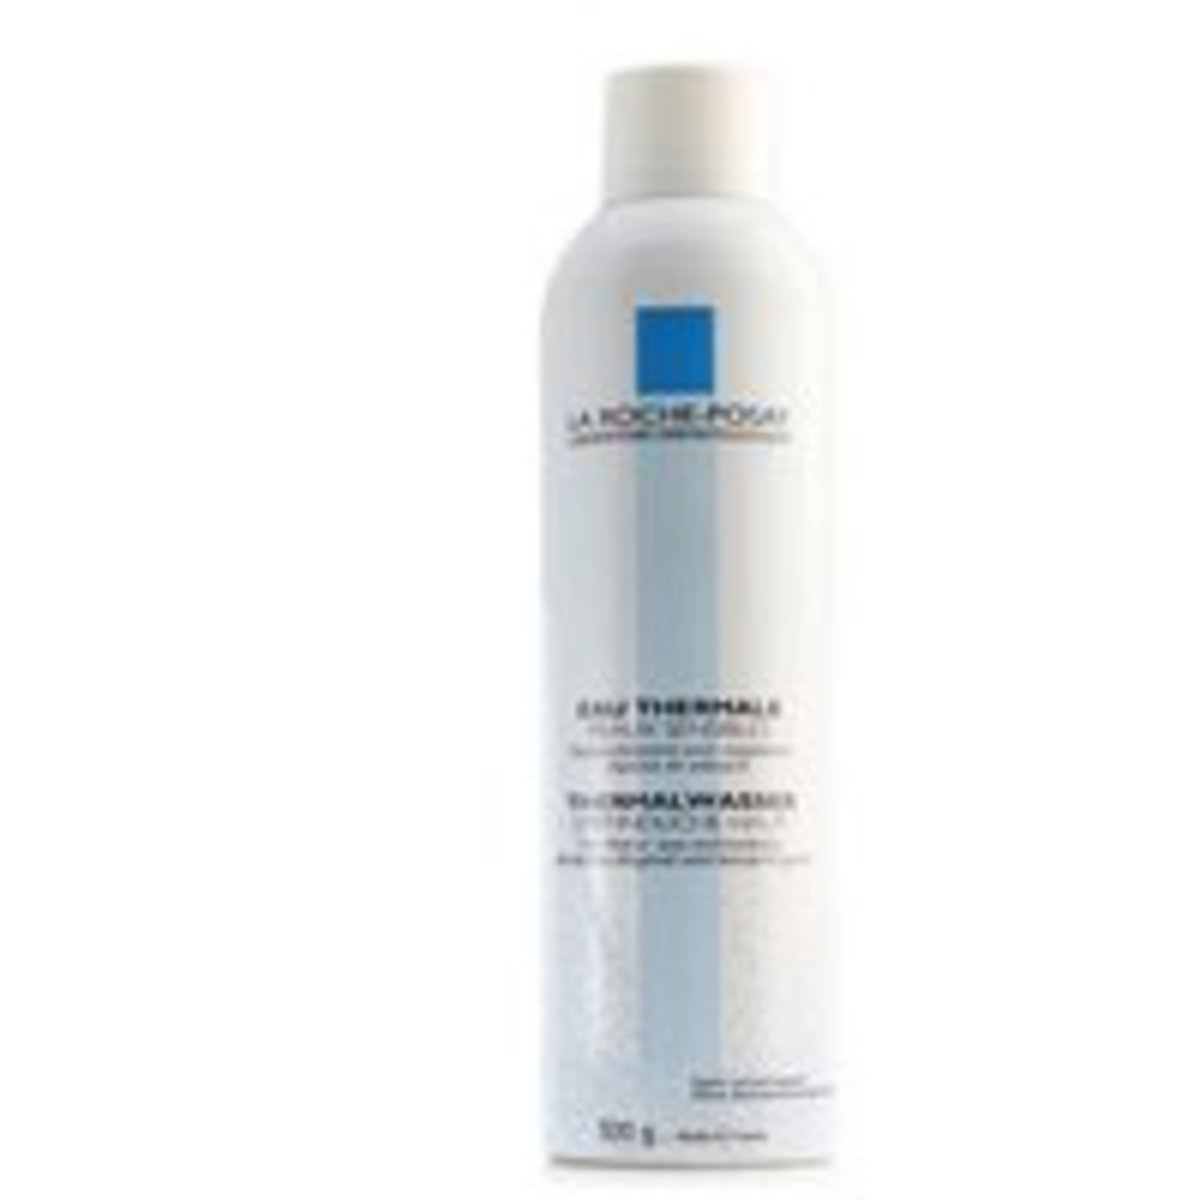 La Roche Posay Thermal Spring Water 300g [Parallel Import]